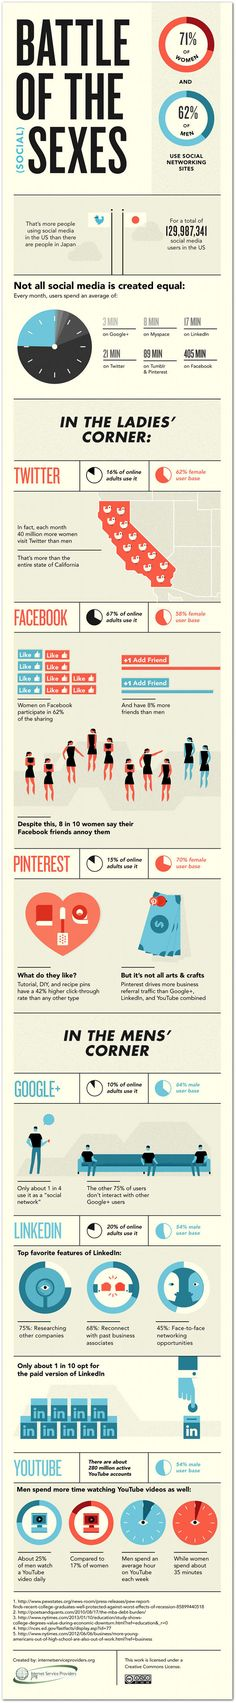 How Men and Women Use Social Media Differently (Infographic) #entrepreneur #prdaily